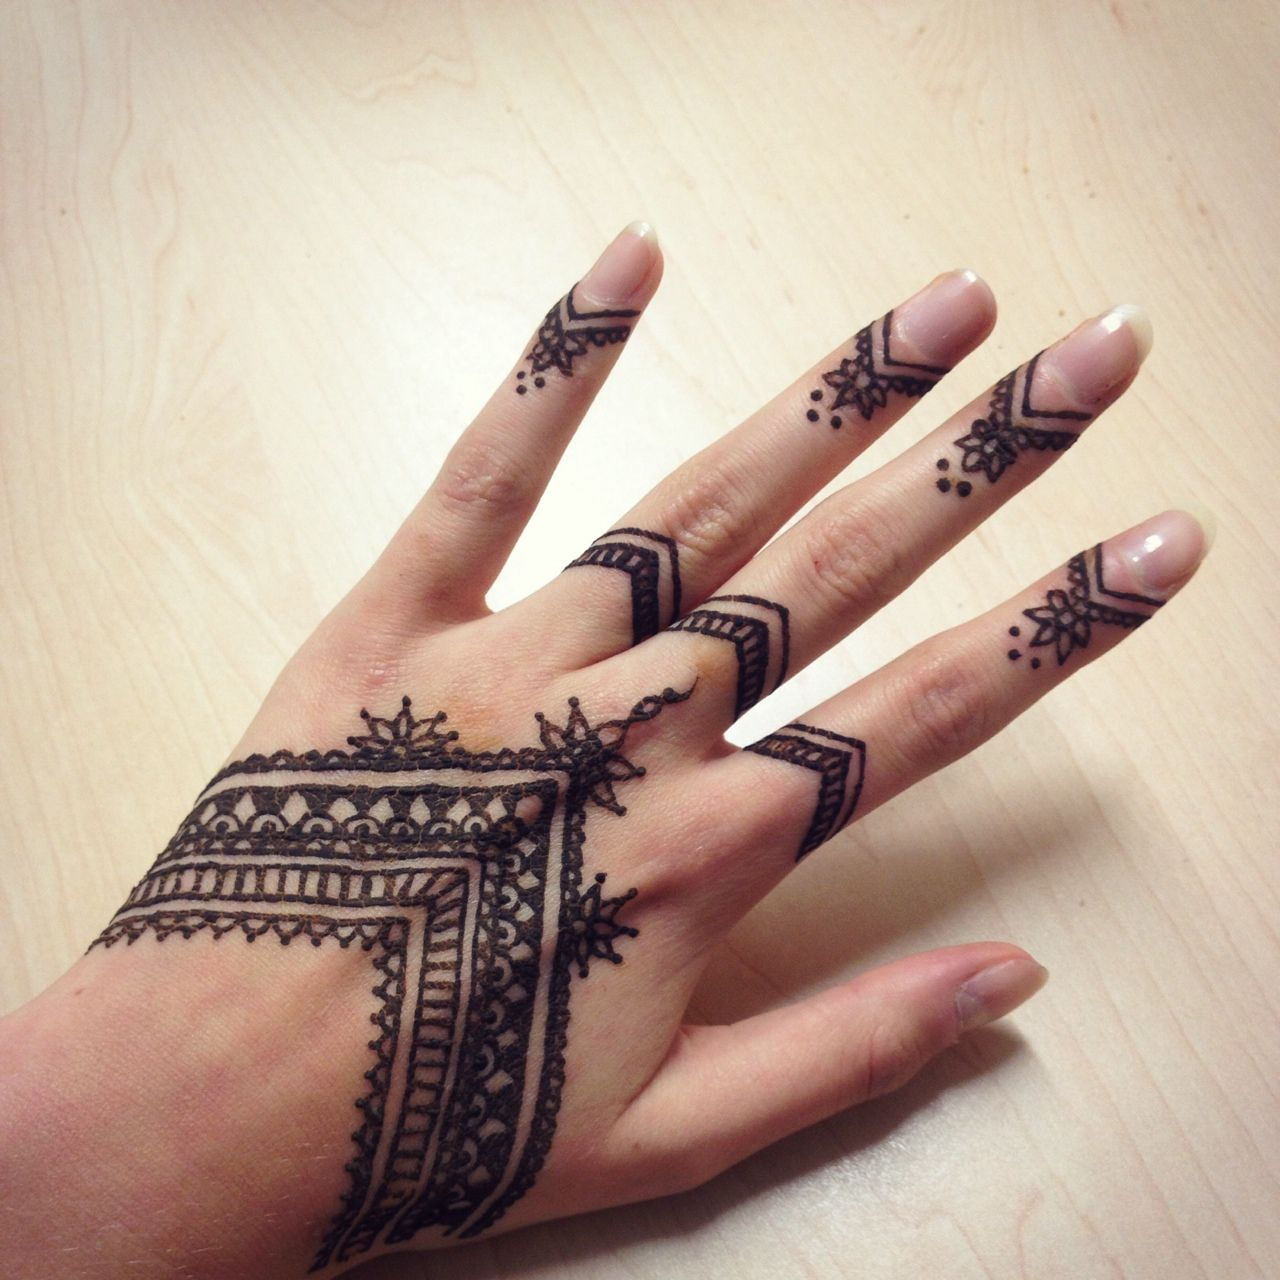 henna tattoo tumblr henna ideas pinterest henna. Black Bedroom Furniture Sets. Home Design Ideas